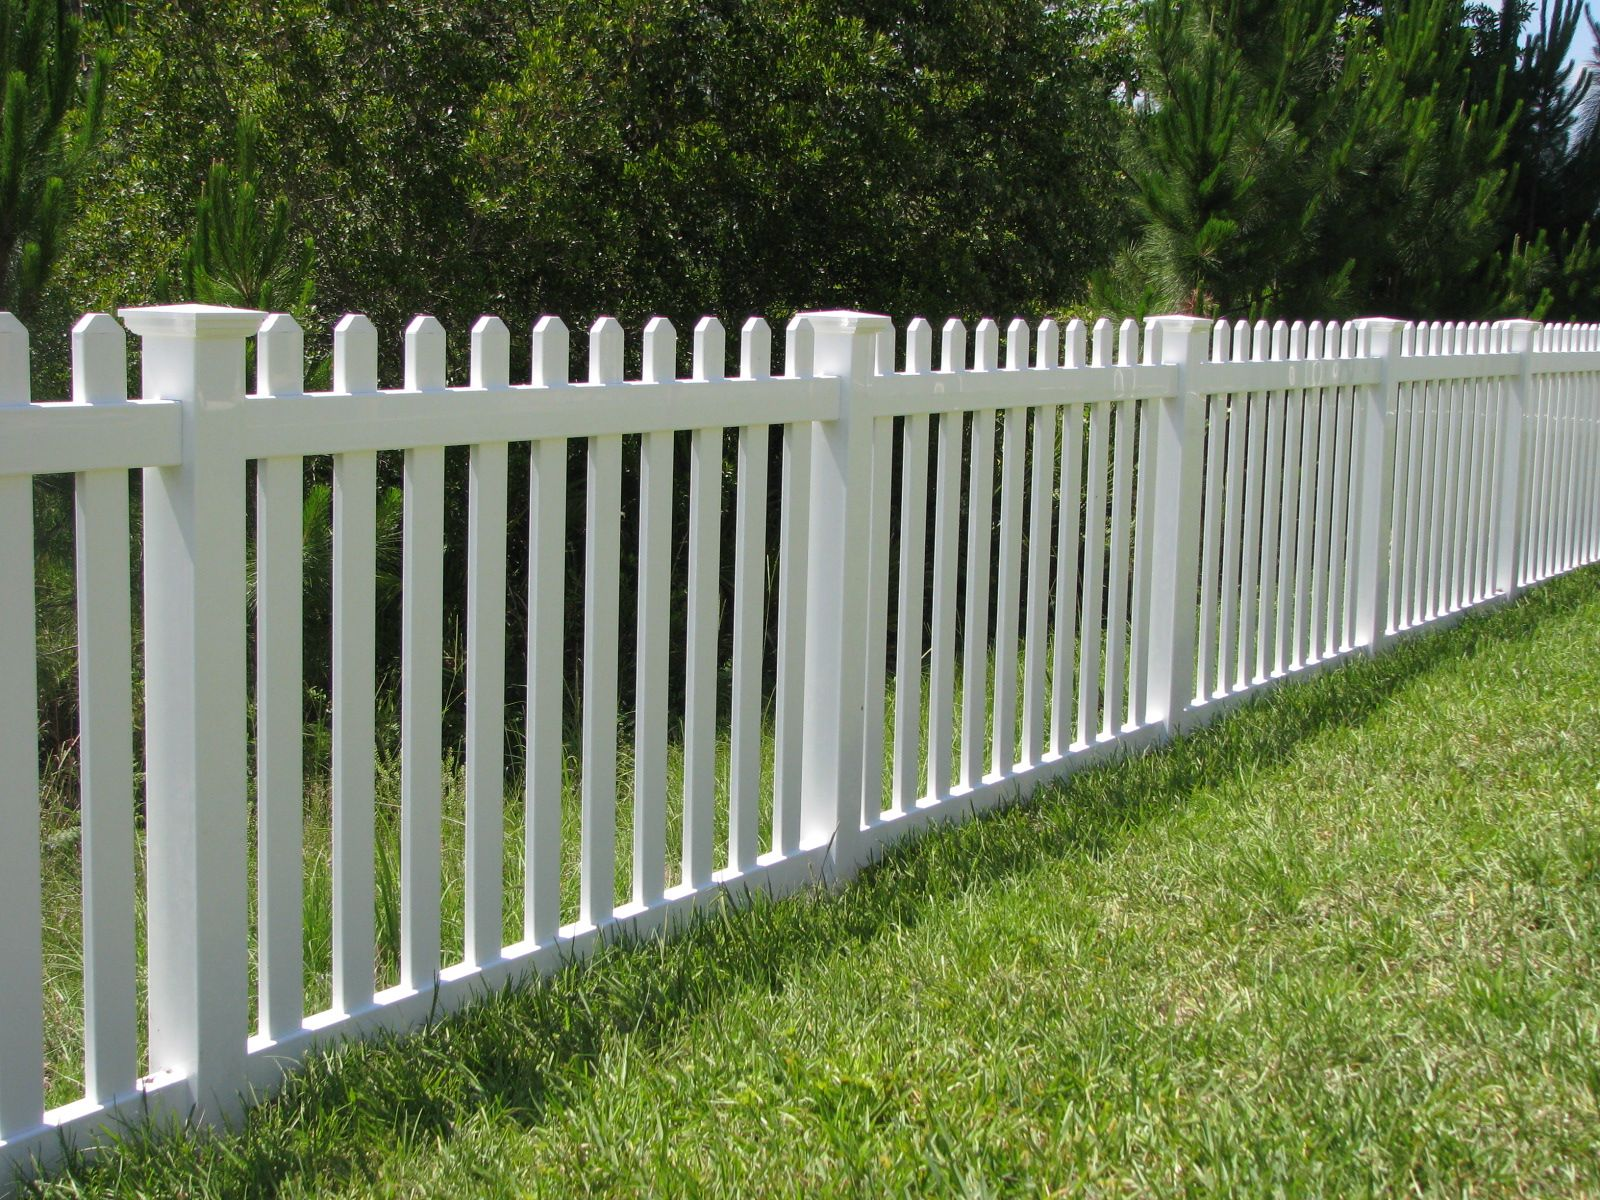 Jamestown Vinyl Picket Fence With New England Caps By Mossy Oak Fence Vinyl Fence Fence Design Building A Fence